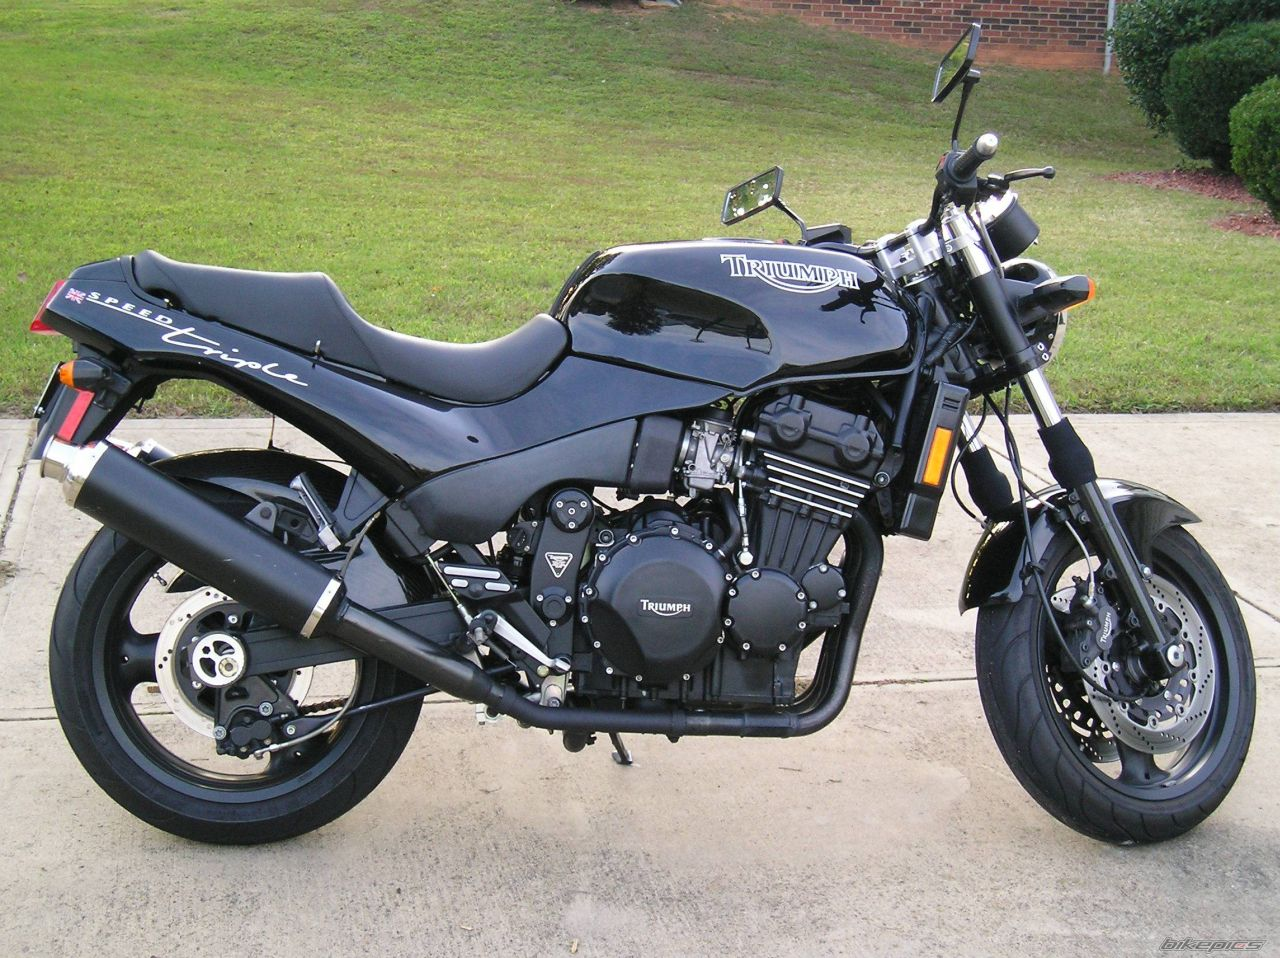 Triumph Speed Triple 900 1996 images #159236